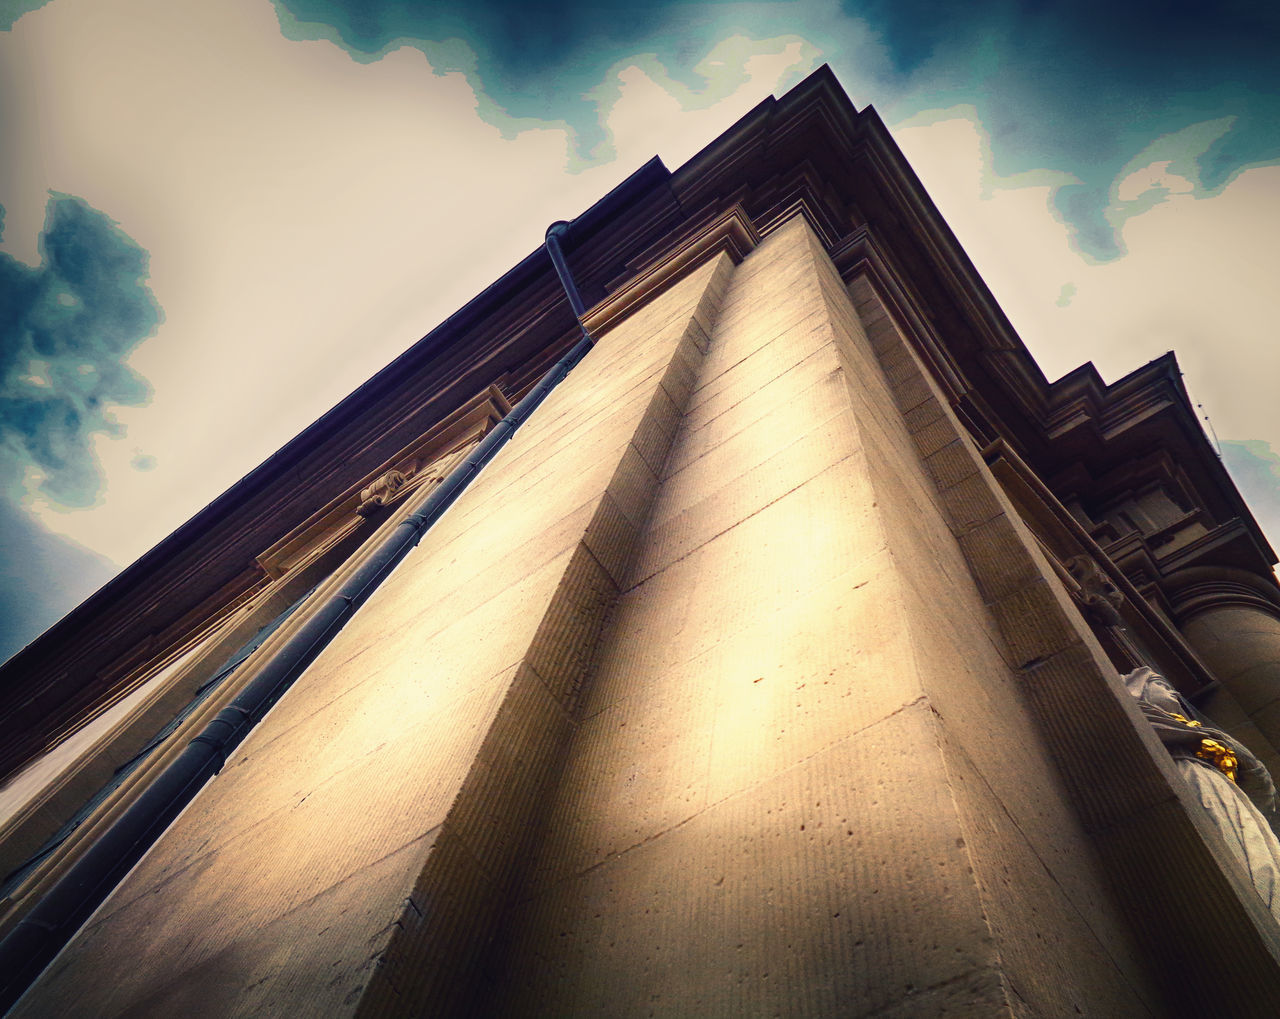 sky, architecture, built structure, low angle view, cloud - sky, building exterior, nature, no people, building, day, city, sunlight, outdoors, travel destinations, religion, travel, shadow, architectural column, belief